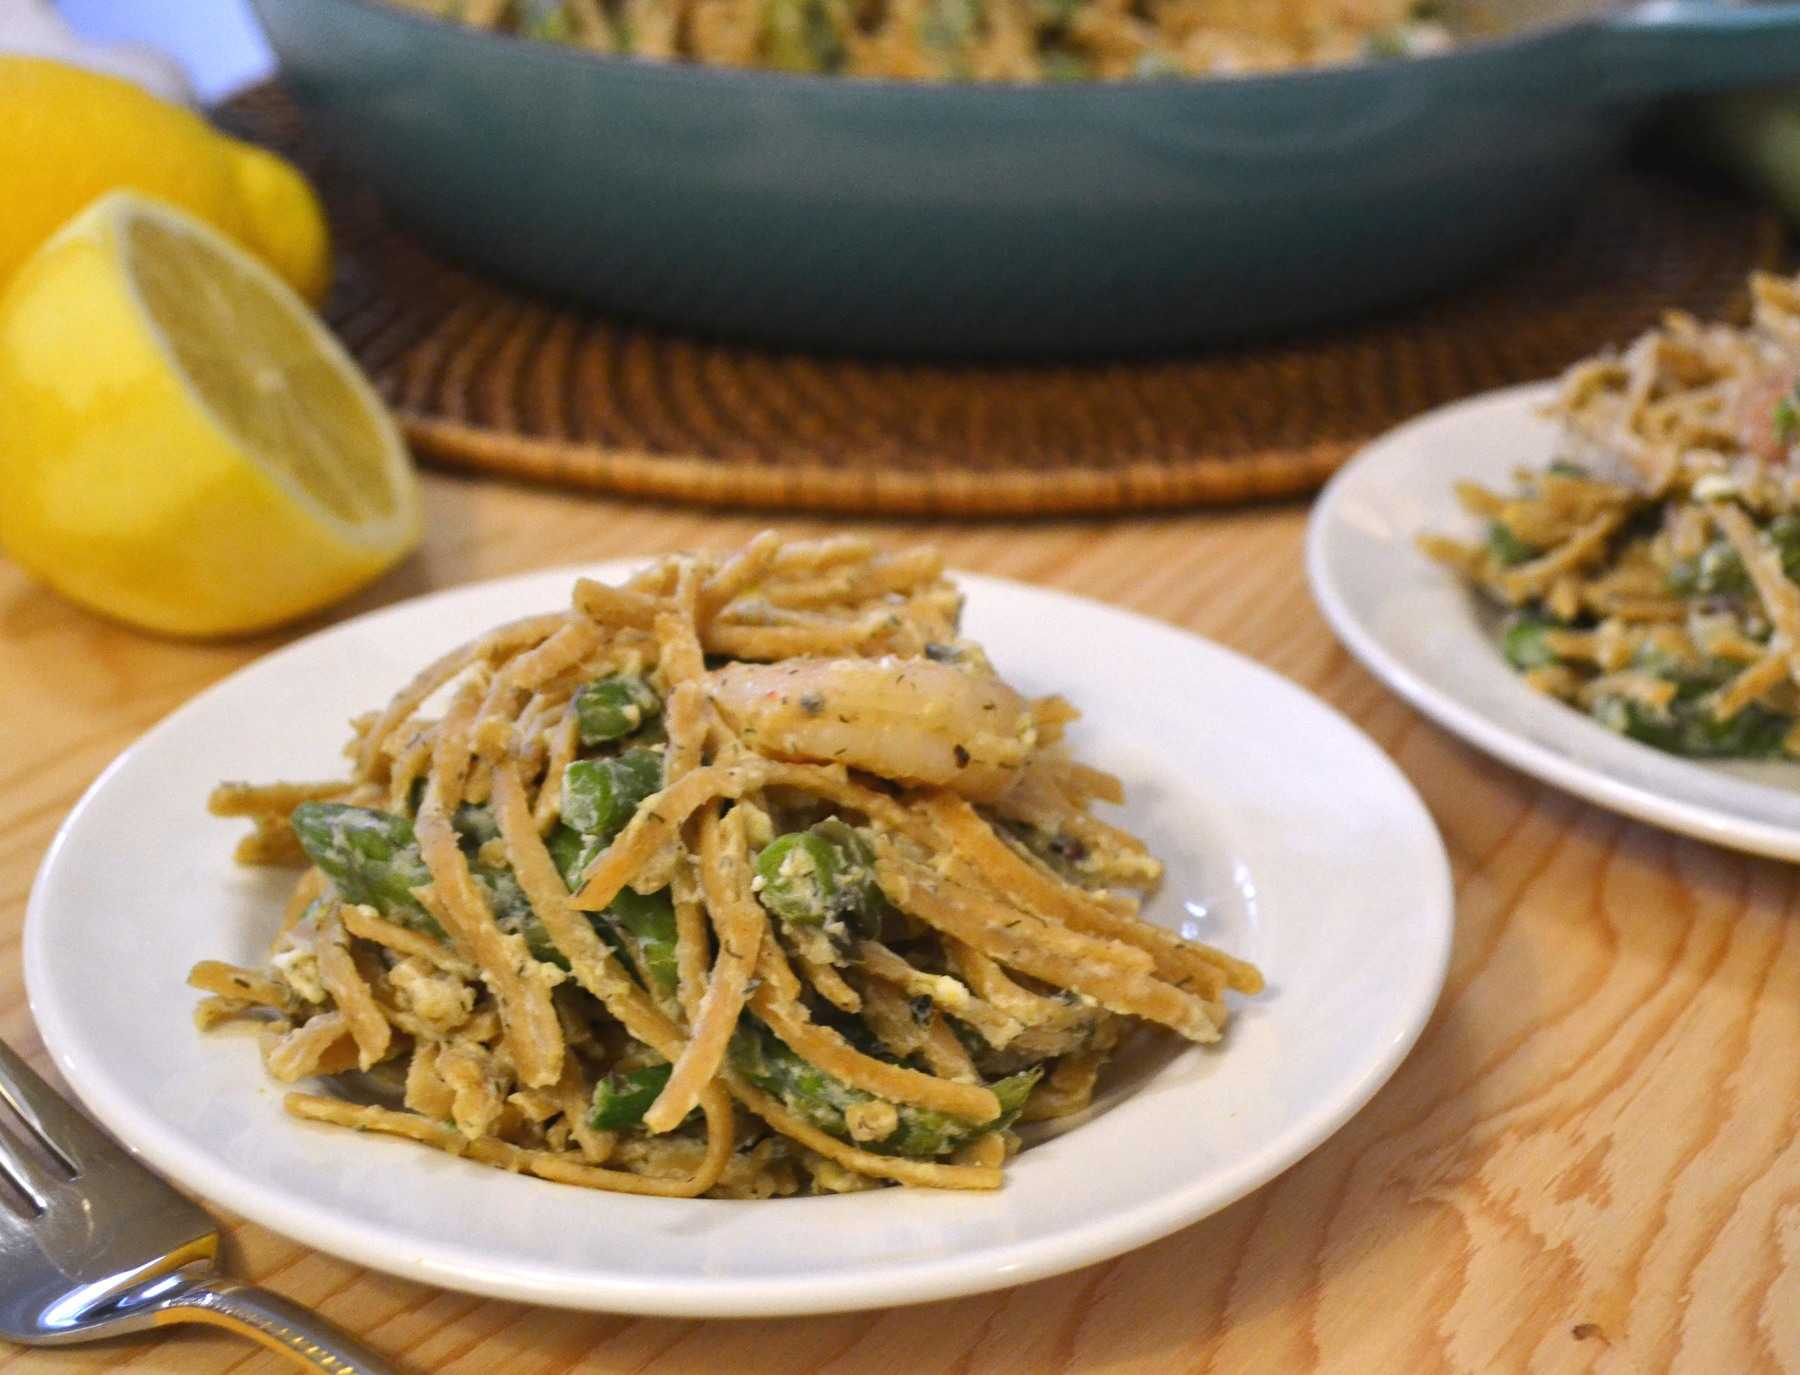 ... party while it lasts with Lemon Asparagus Pasta with Roasted Shrimp